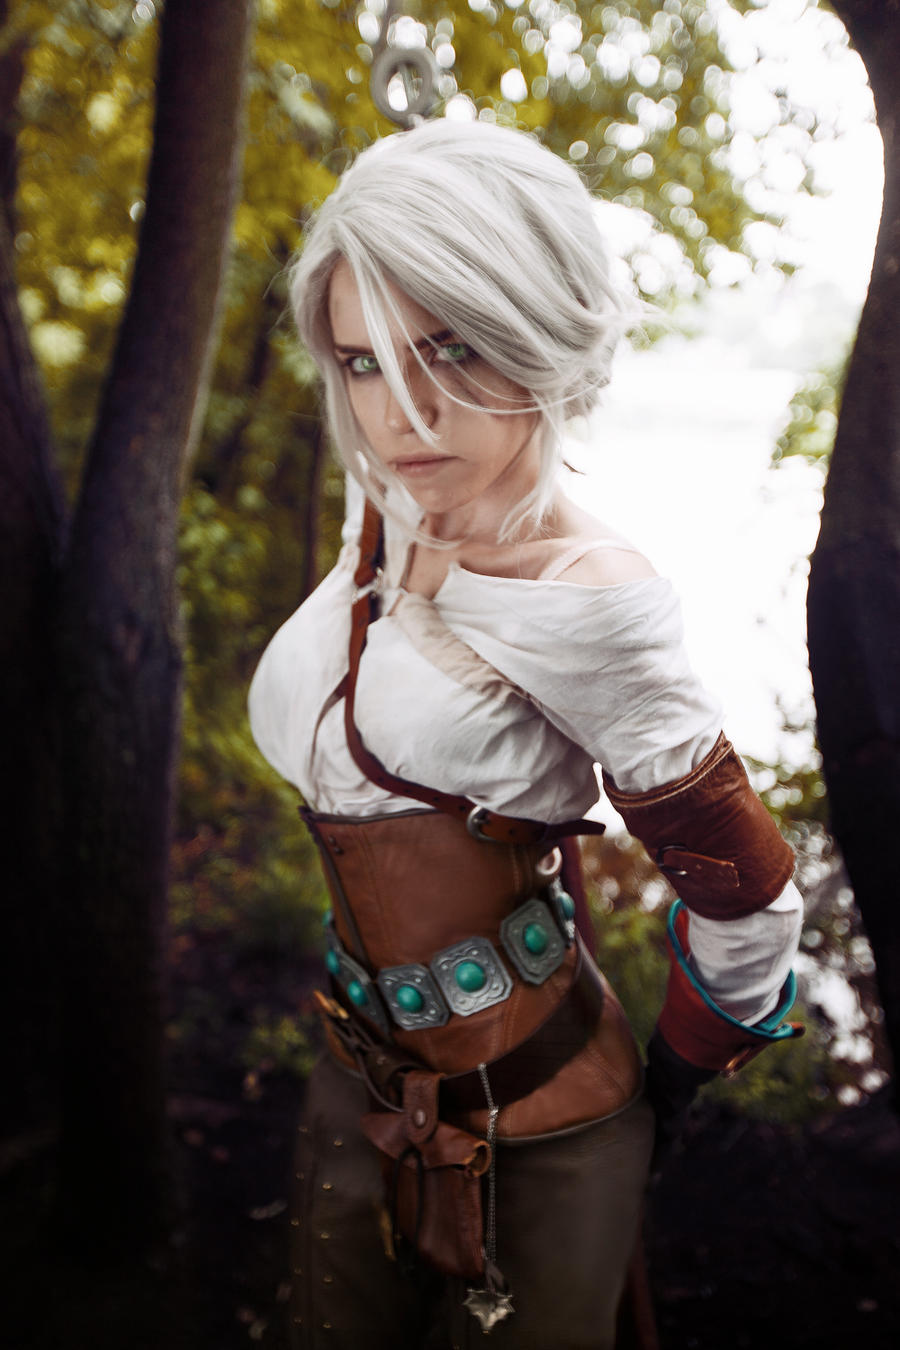 Cirilla - The Witcher: wild hunt by TophWei on DeviantArt